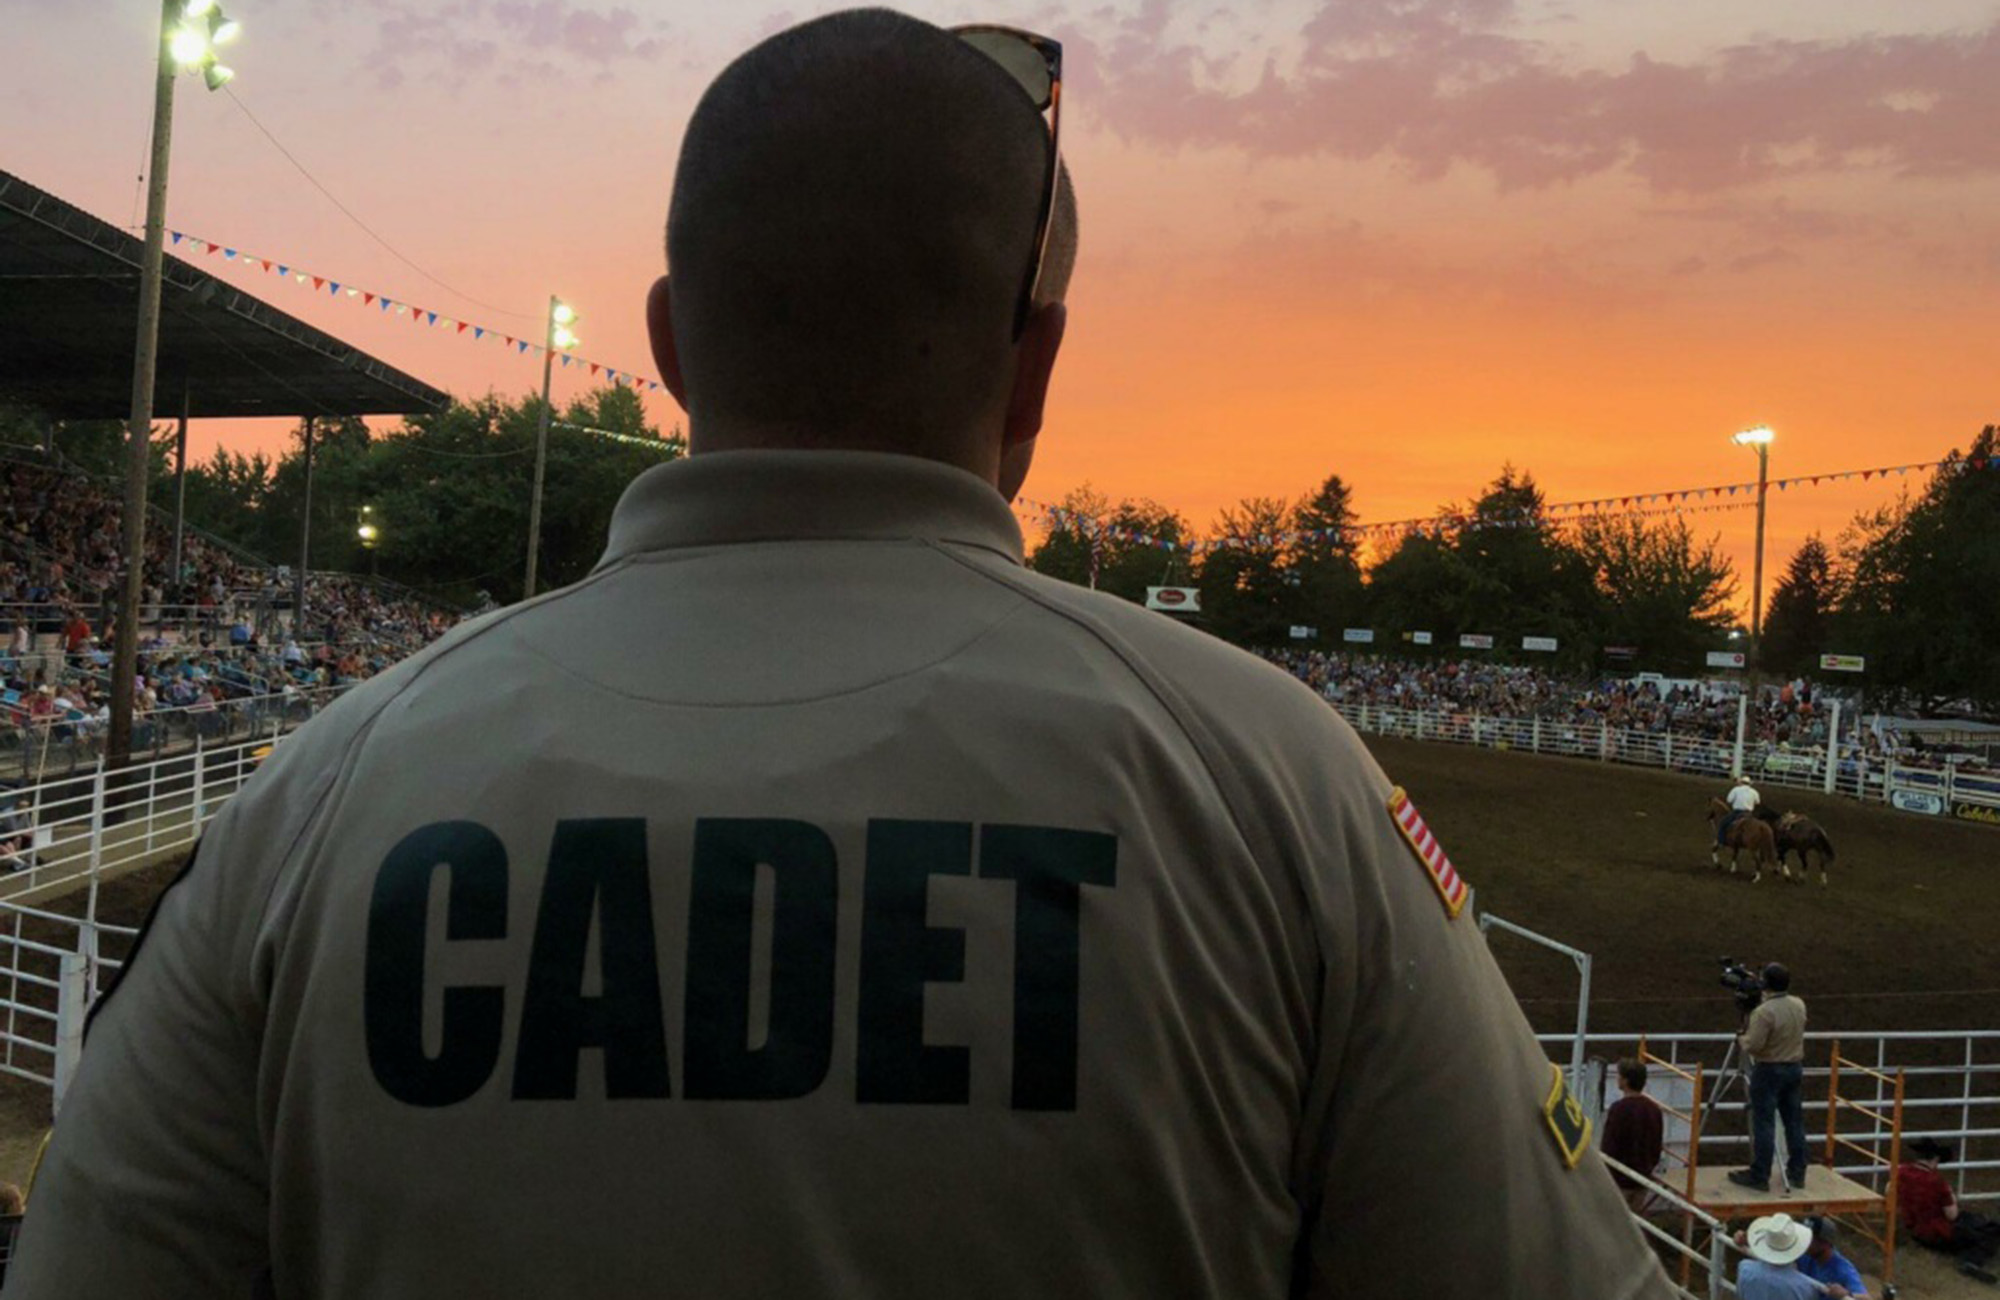 cadet at rodeo